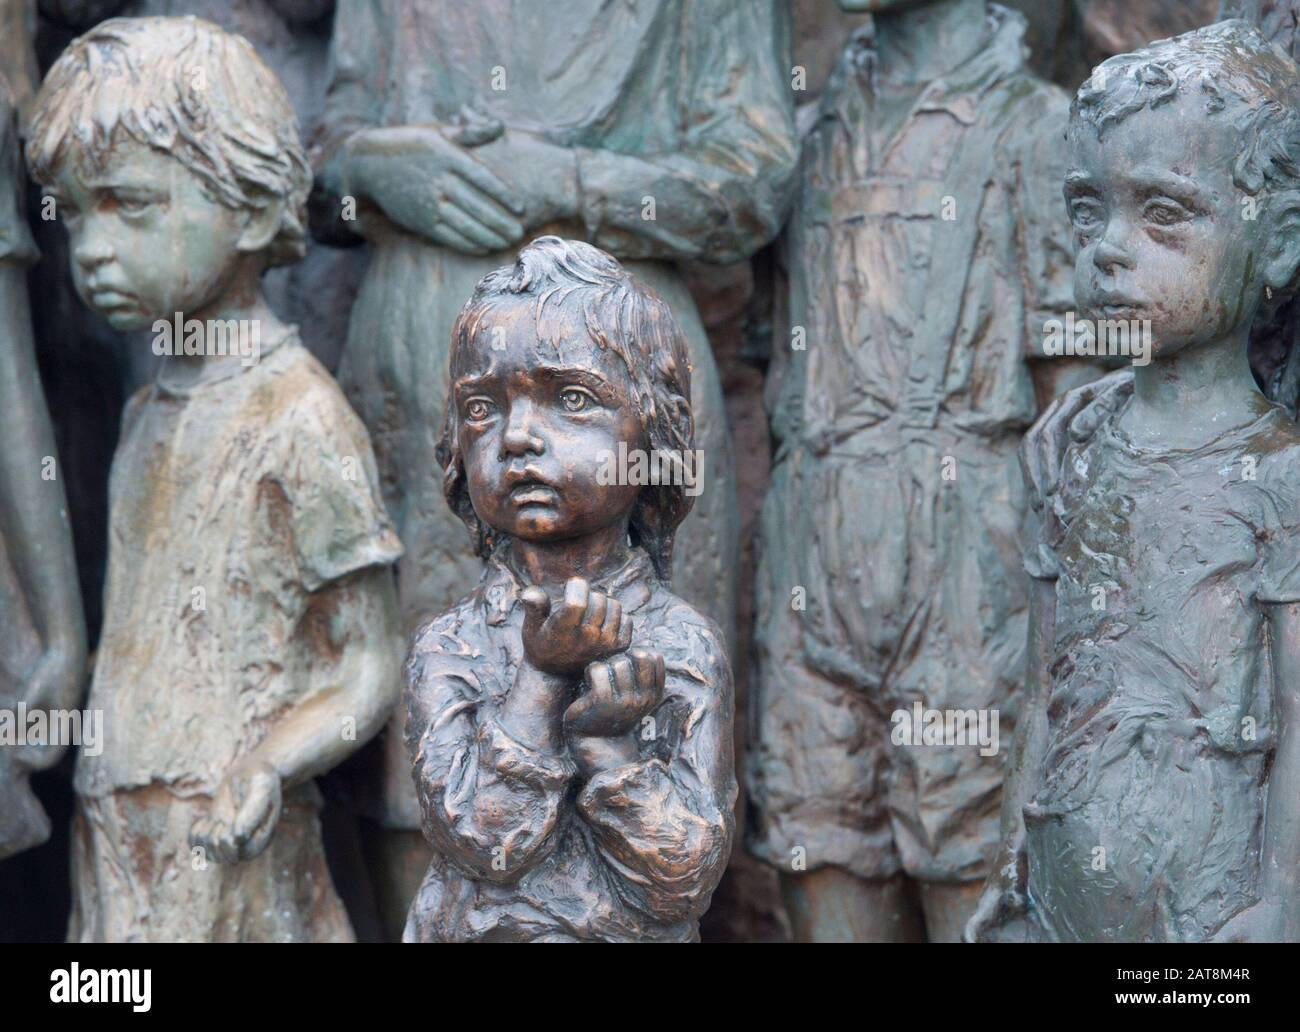 +++FILE PHOTO+++  Newly casted bronze sculpture of a girl was set into Lidice memorial of children victims of the war on January 16, 2011 in Lidice, C Stock Photo